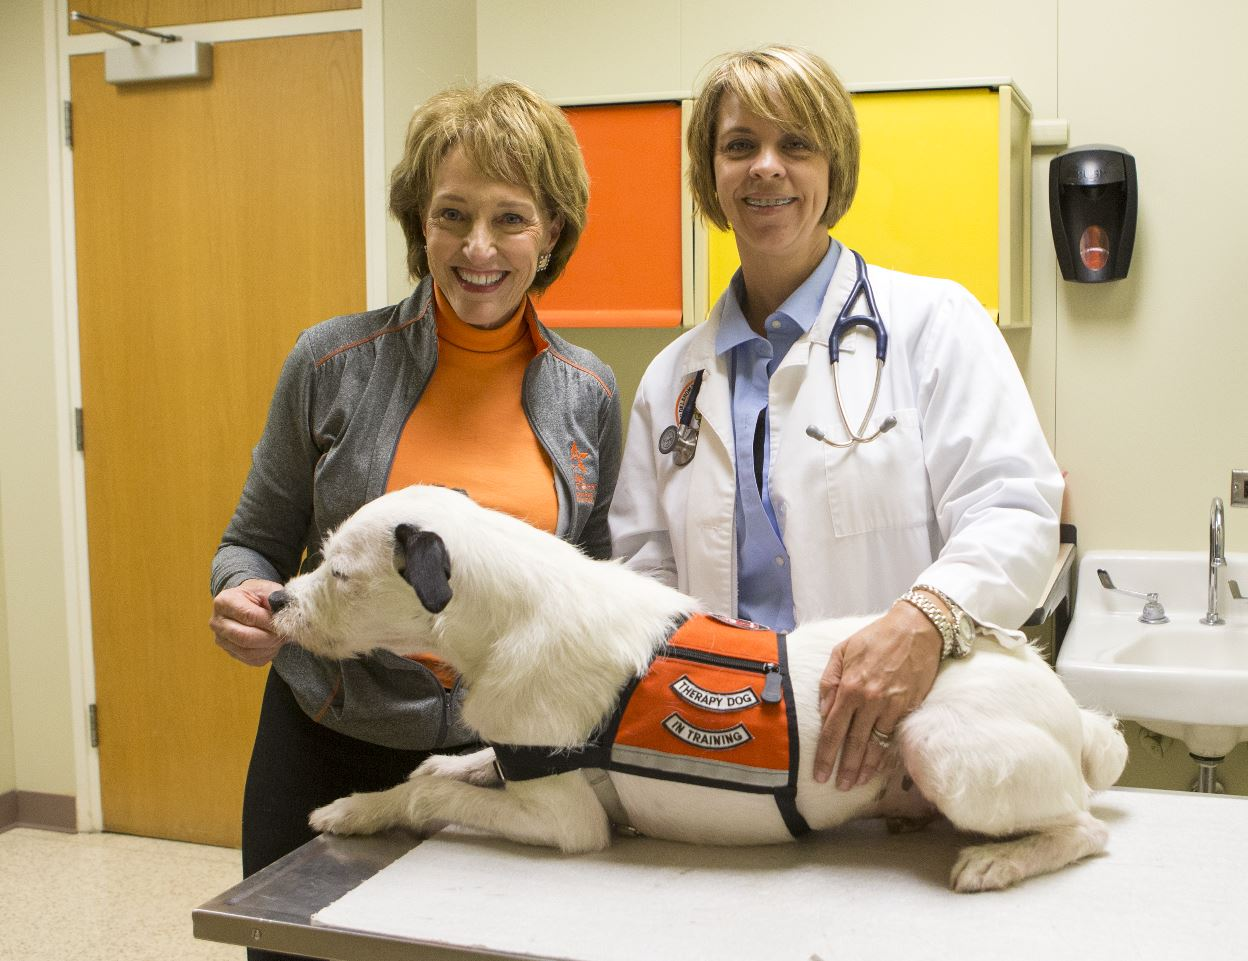 Dr. Lara Sypniewski and OSU First Lady Anne Hargis pose with a member of Pete's Pet Posse